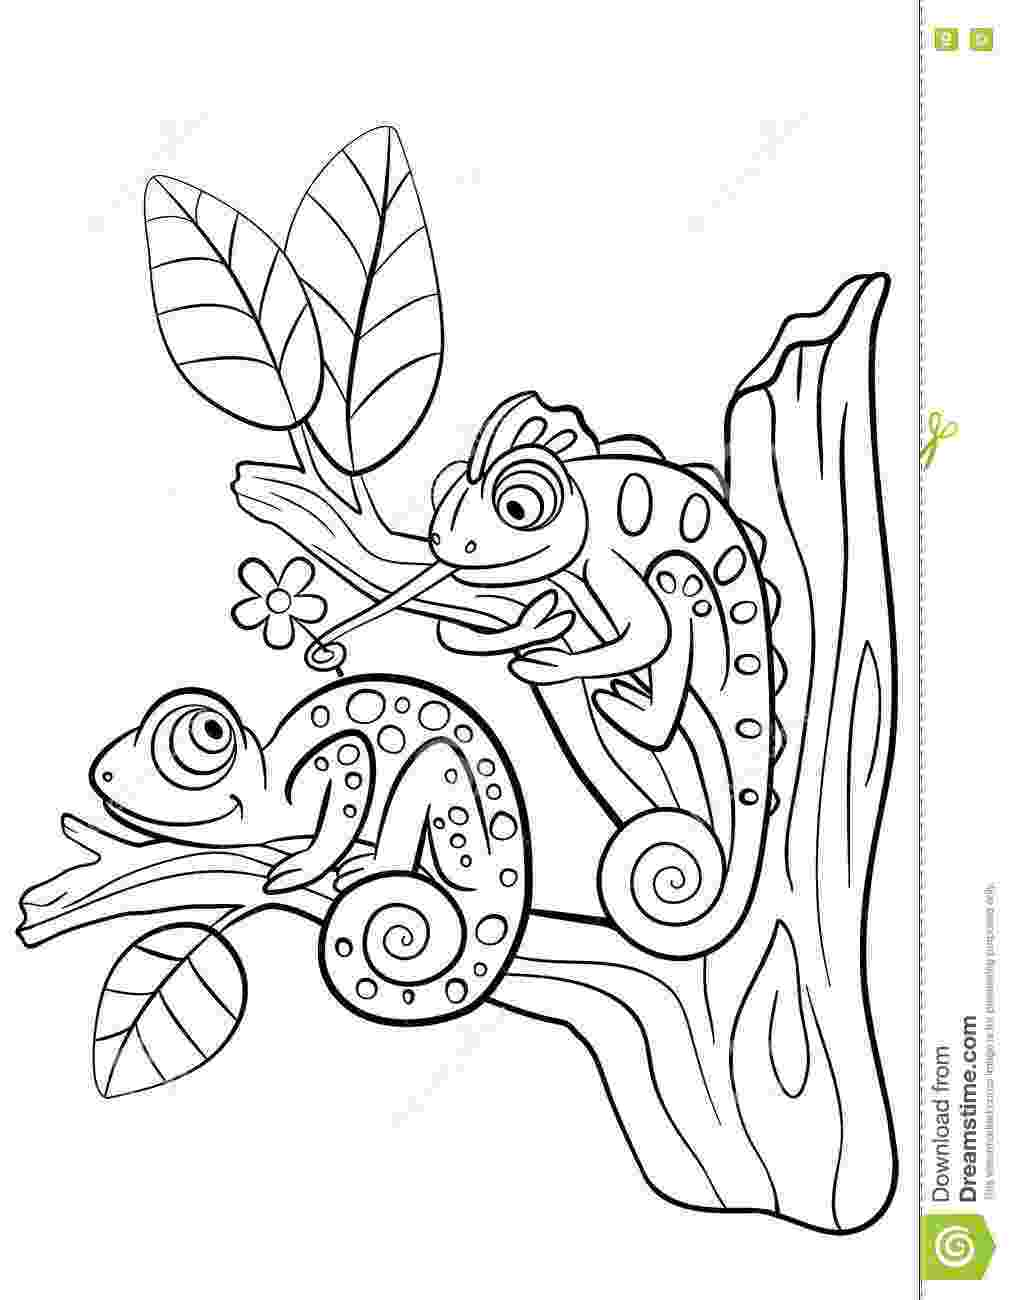 cute wild animals colouring pages wild animal coloring pages mother and baby zebra animals colouring pages wild cute